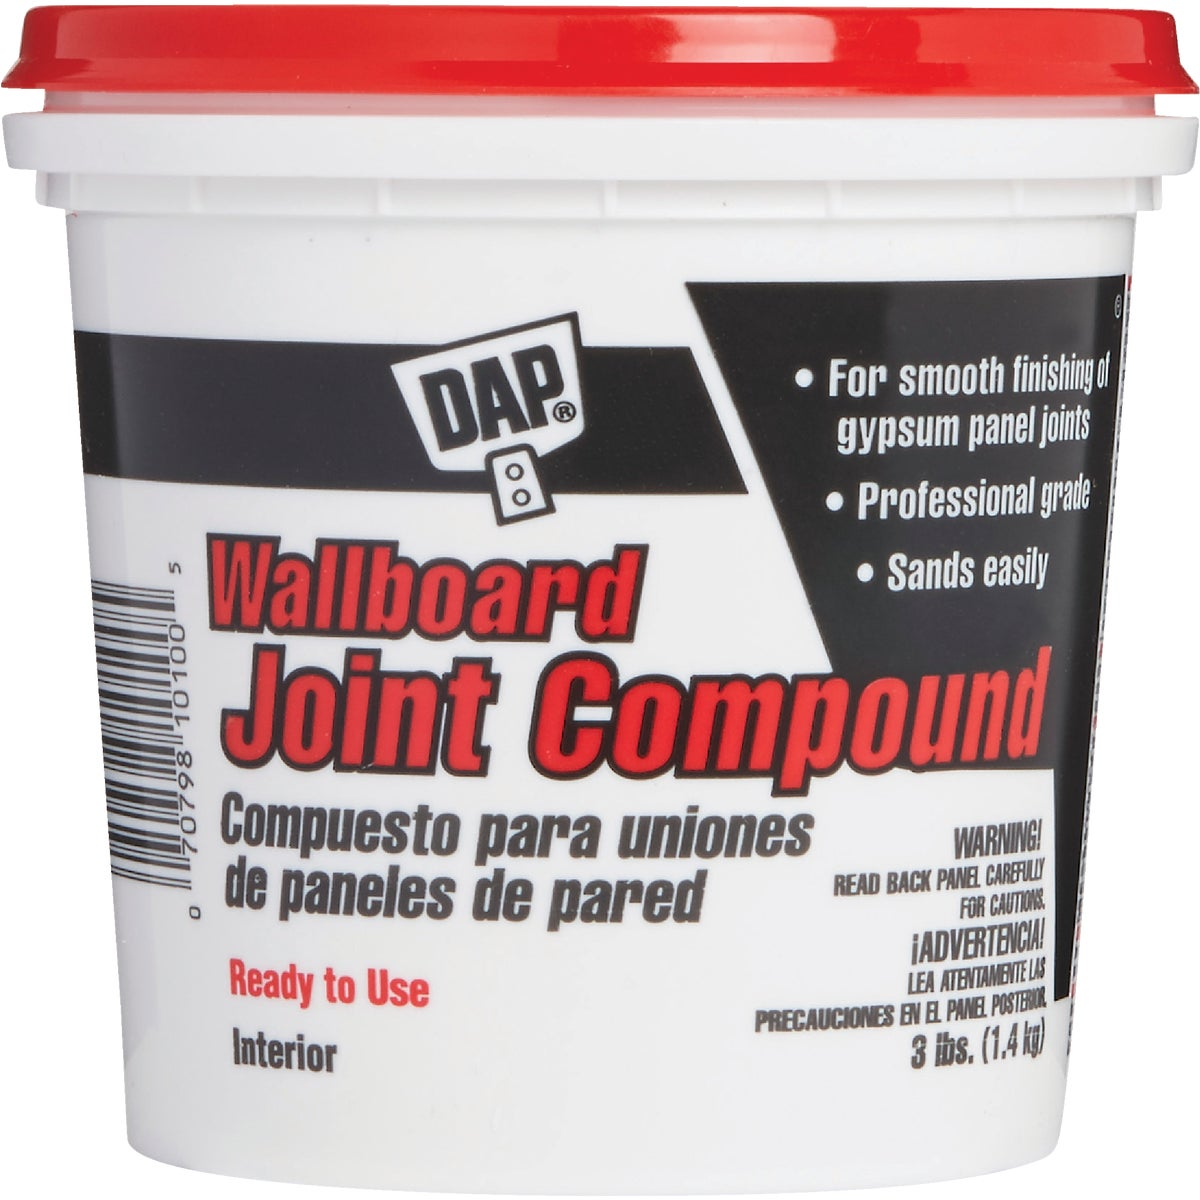 3LB RDMIX JOINT COMPOUND - 10100 by Dap Inc